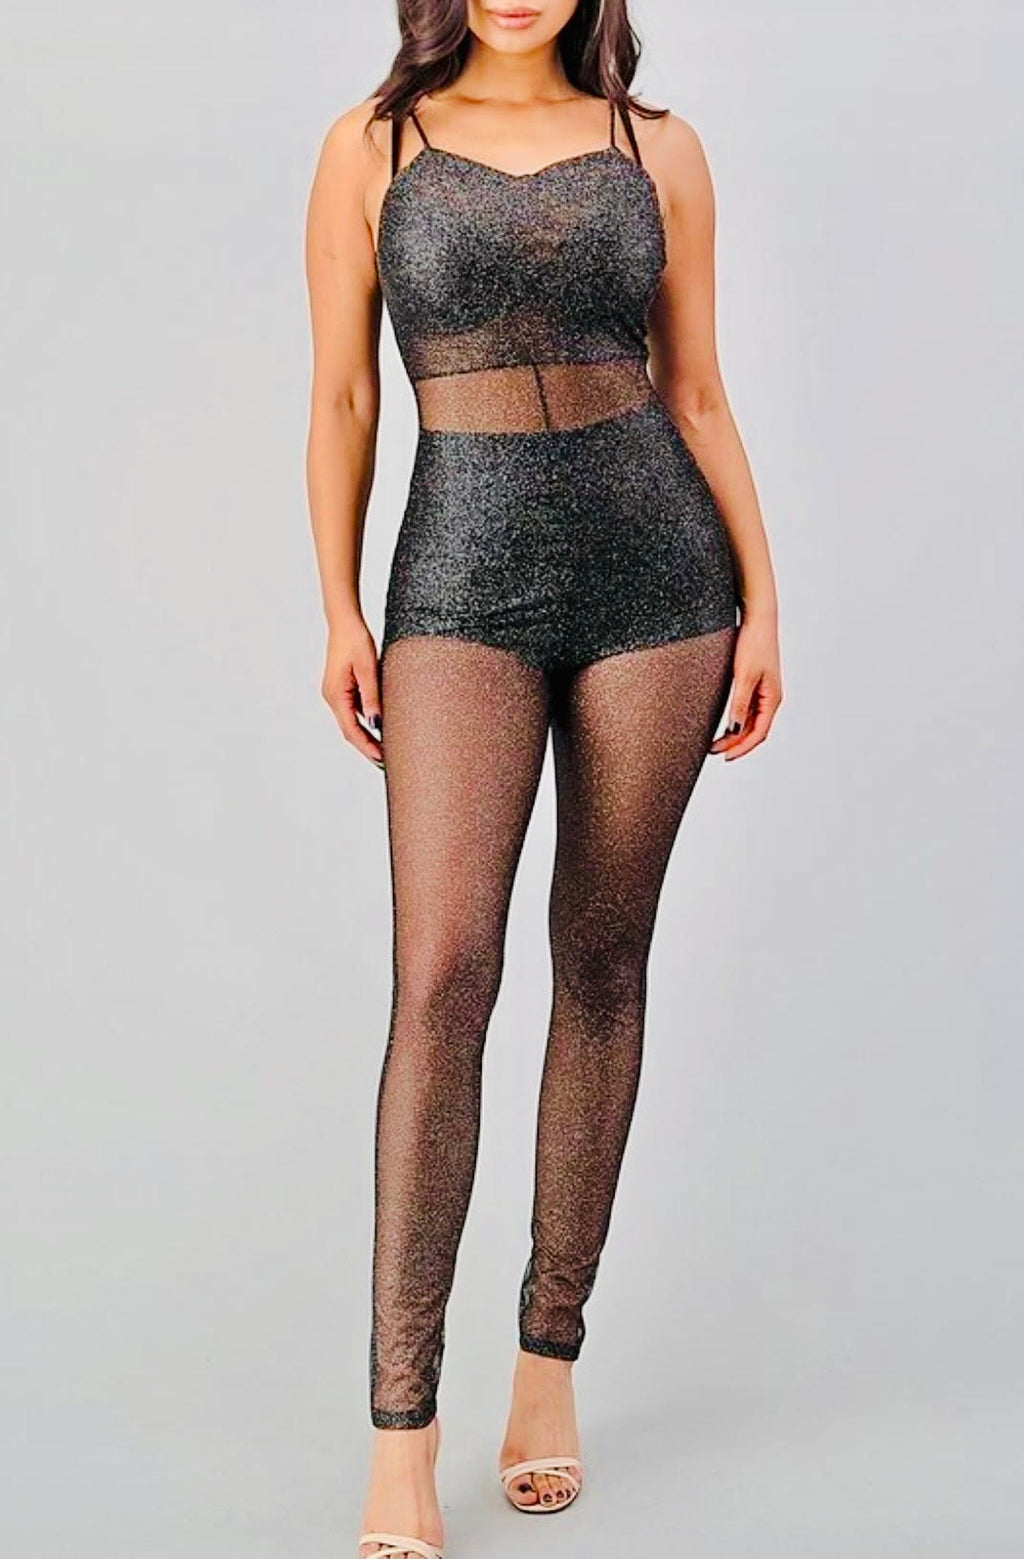 Glitter Mesh Jumpsuit (Shorts & Top Not Included)